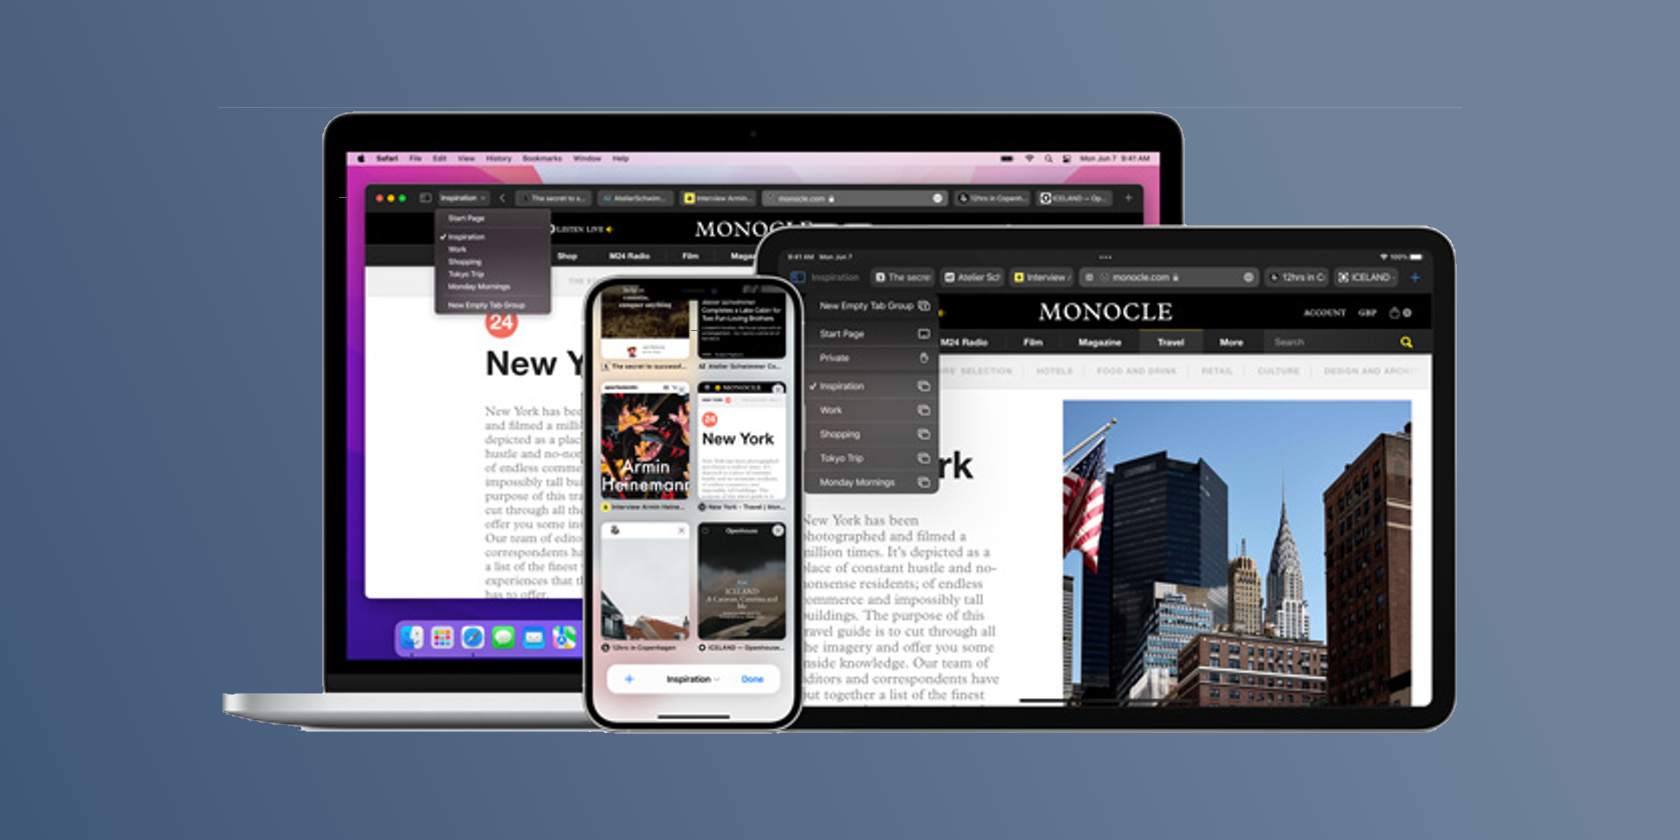 The Top 10 Safari Features Announced at WWDC21